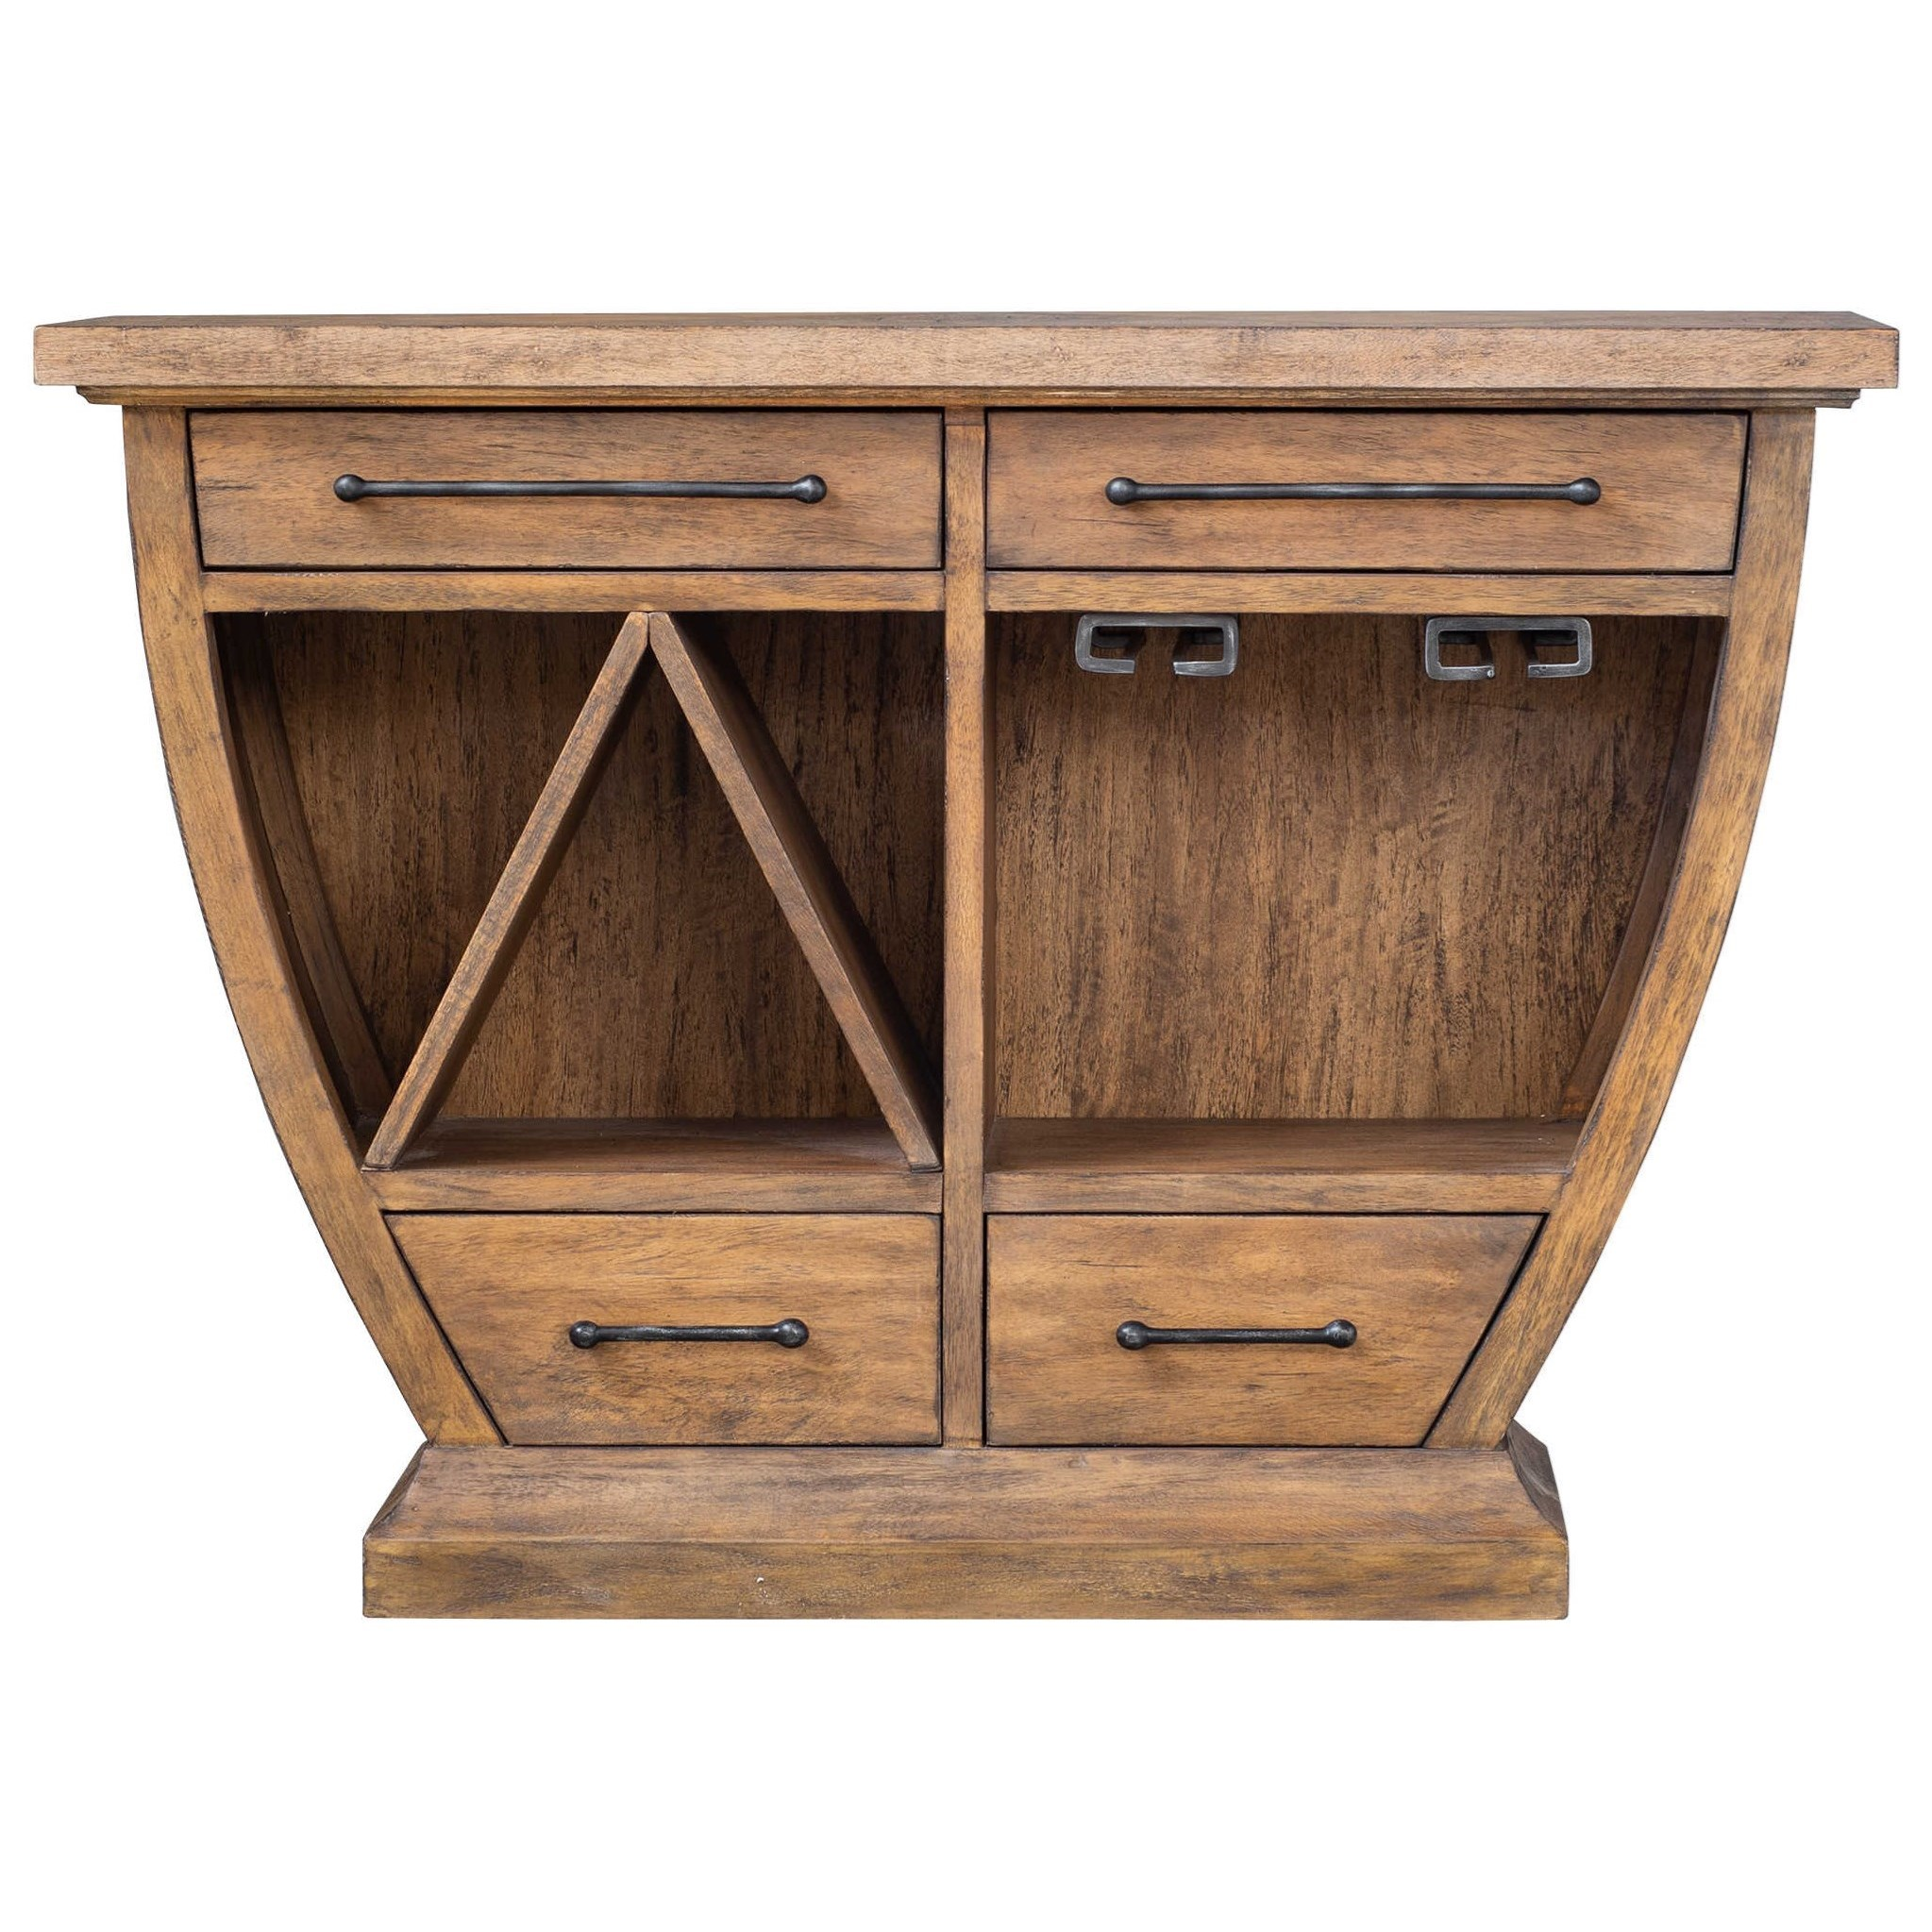 Accent Furniture Aleph Rustic Wood Bar Cabinet by Uttermost at Goffena Furniture & Mattress Center